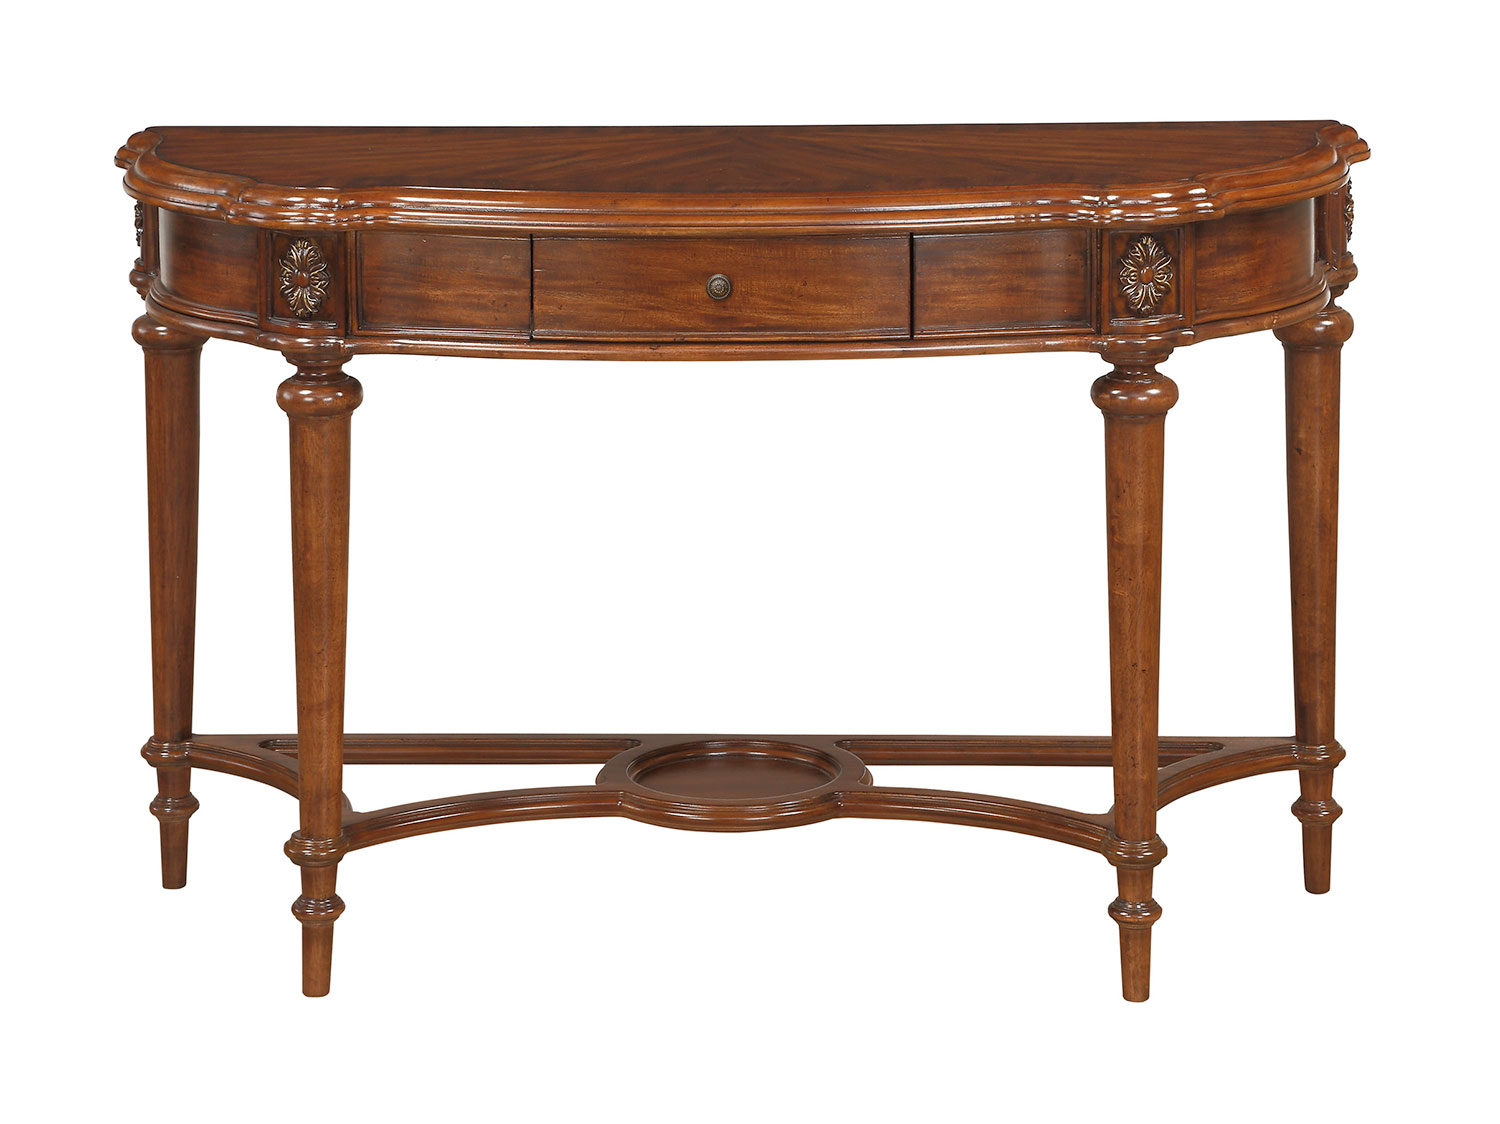 Homelegance Barbary Sofa Table with Functional Drawer - Cherry